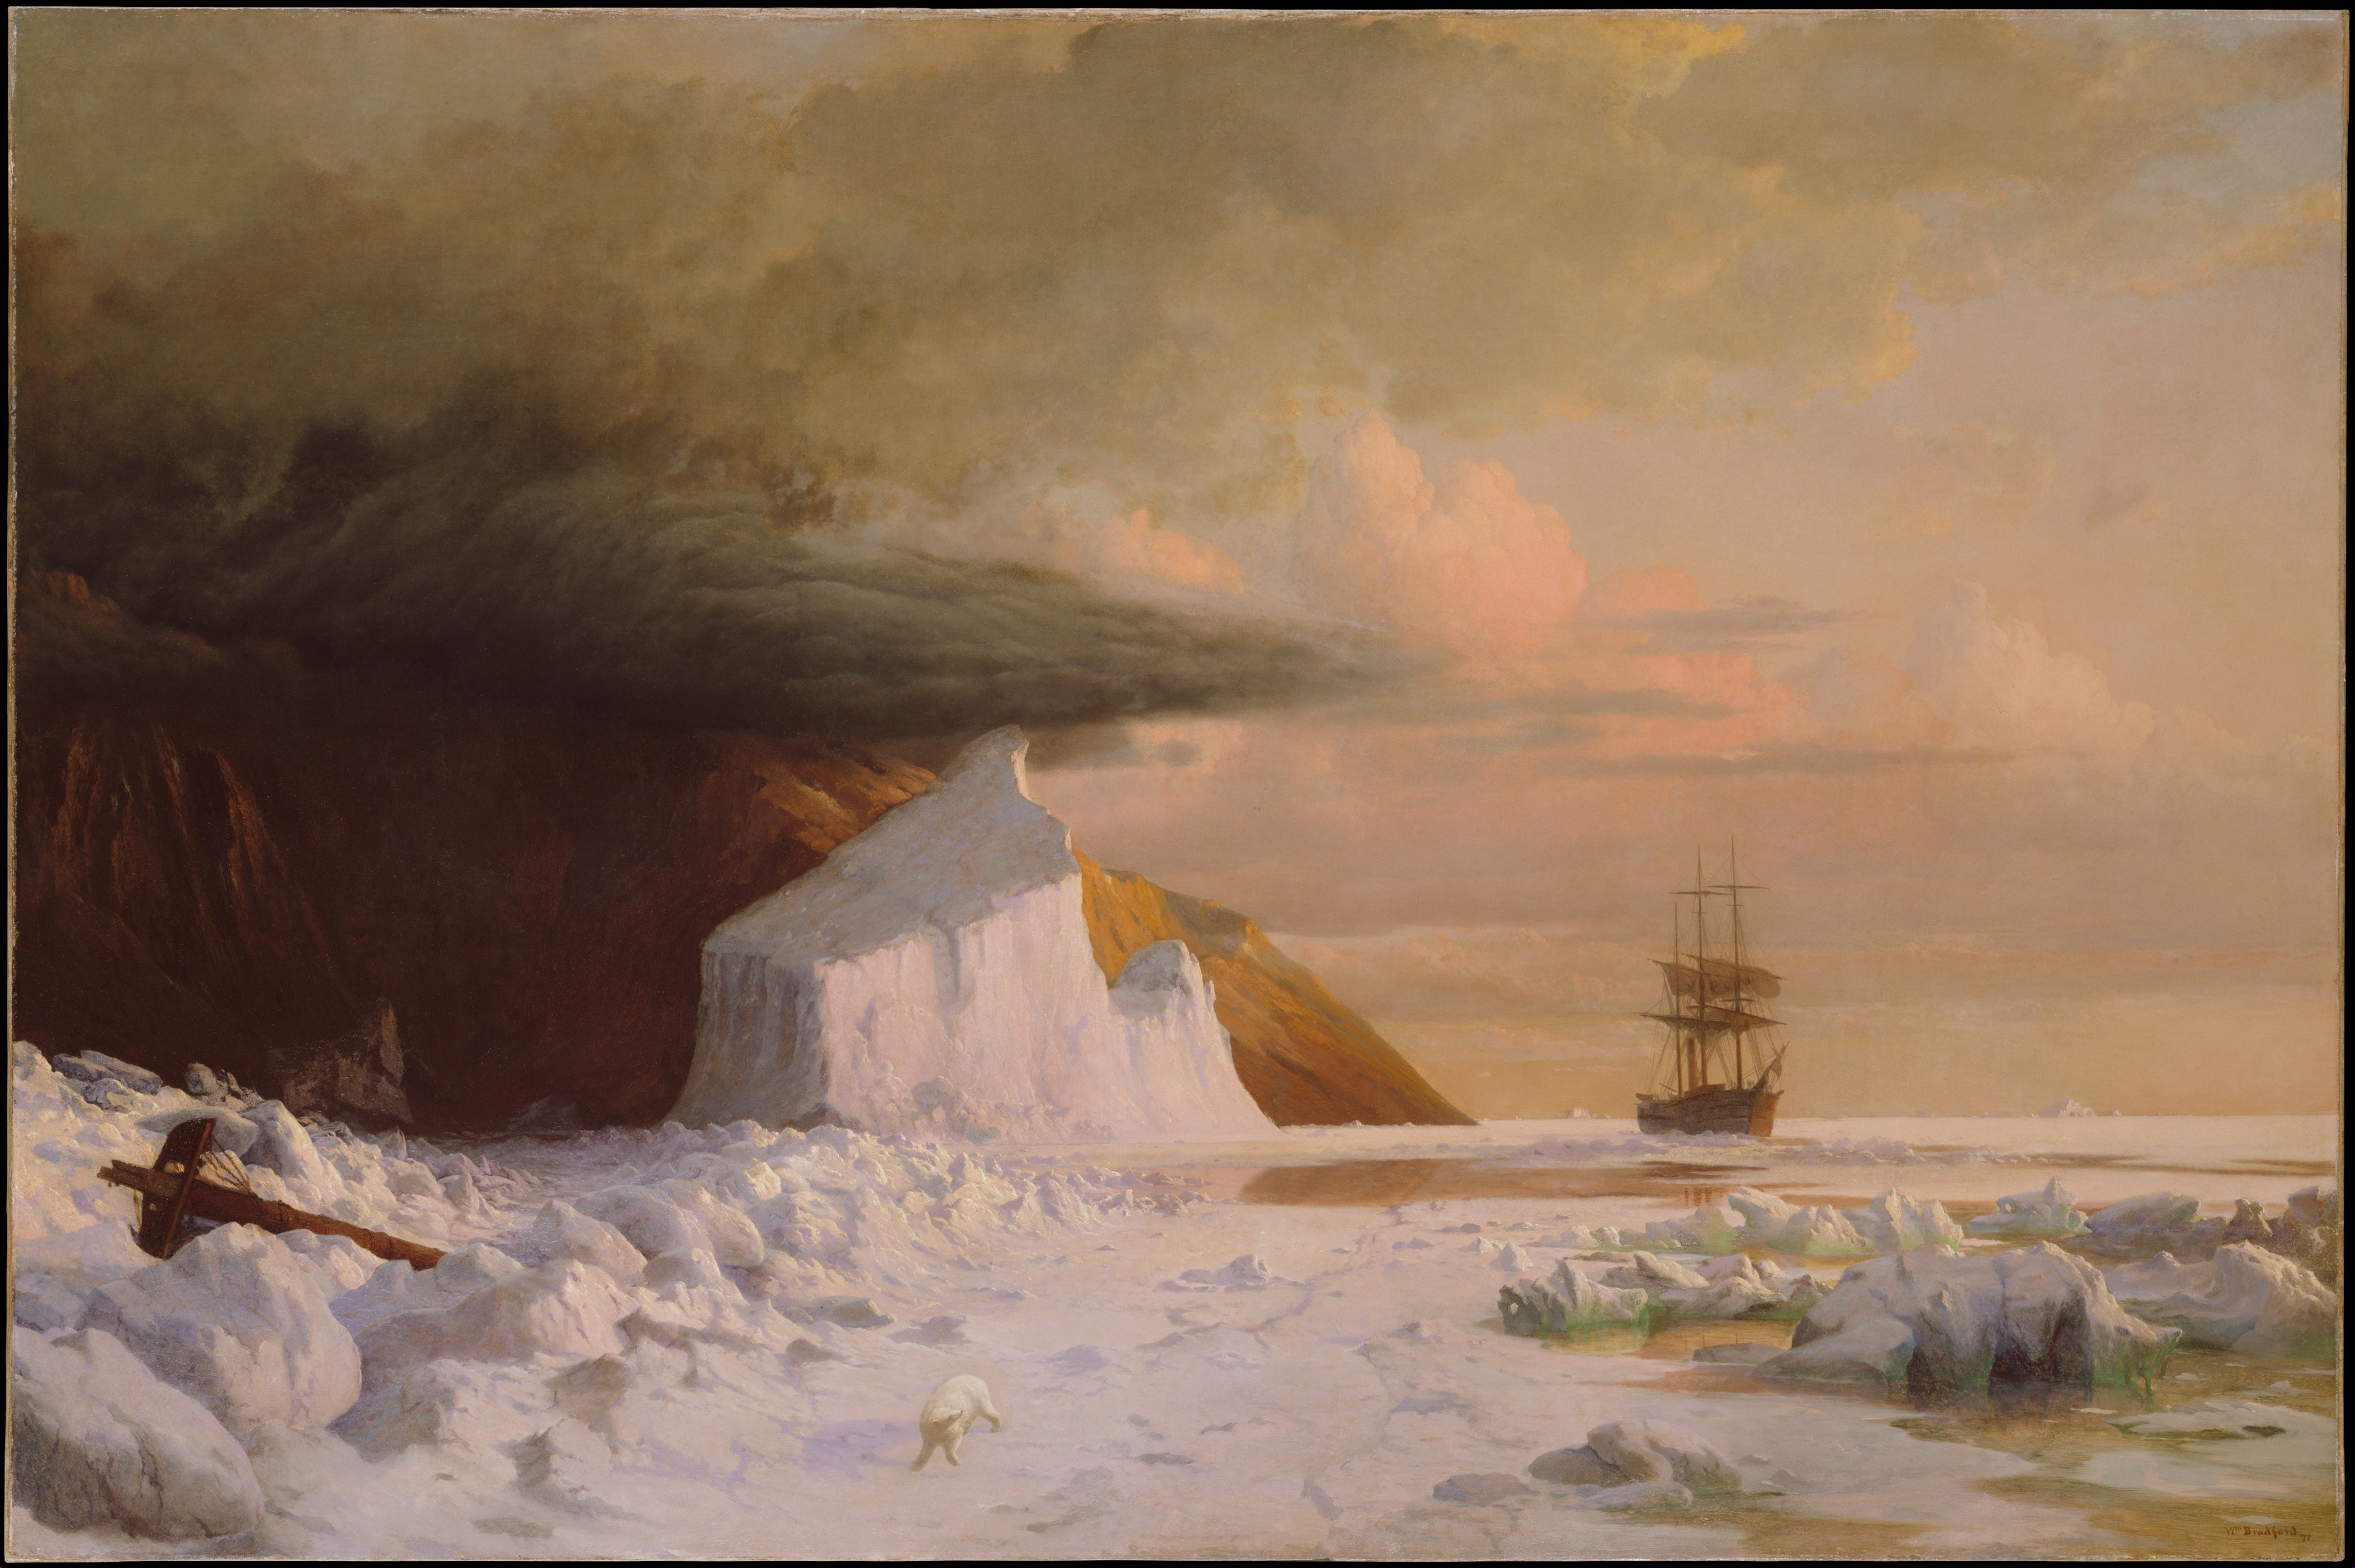 An Arctic Summer: Boring Through the Pack in Melville Bay by William Bradford, 1871